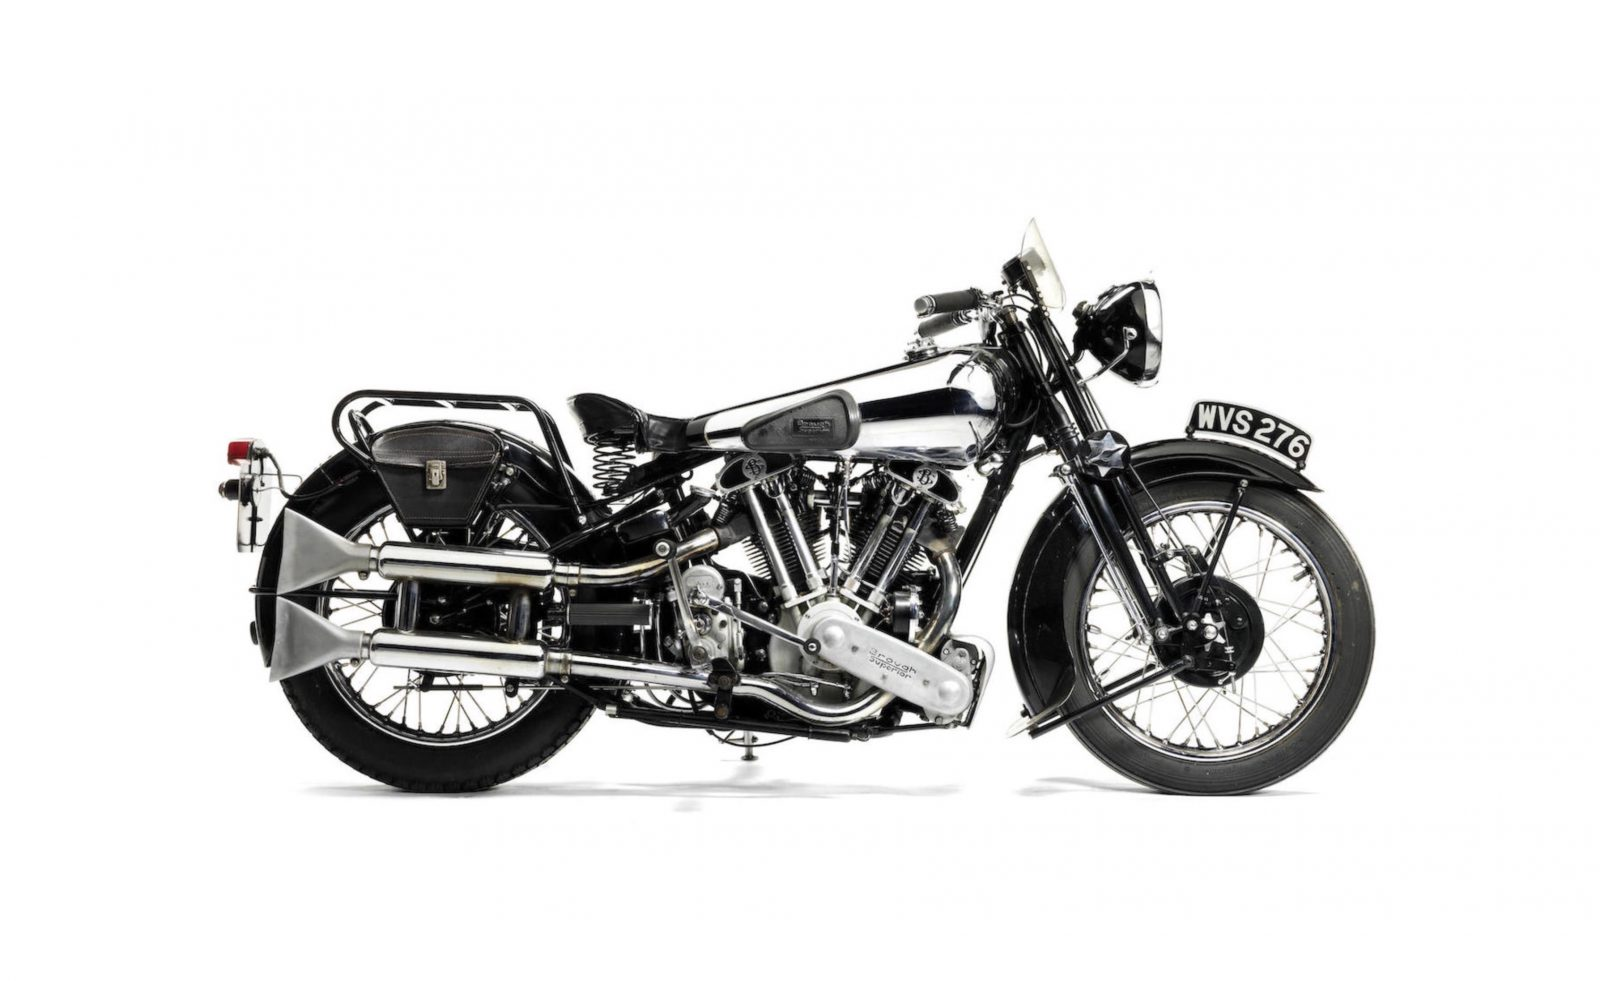 Brough Superior SS100 2 1600x981 - Brough Superior SS100